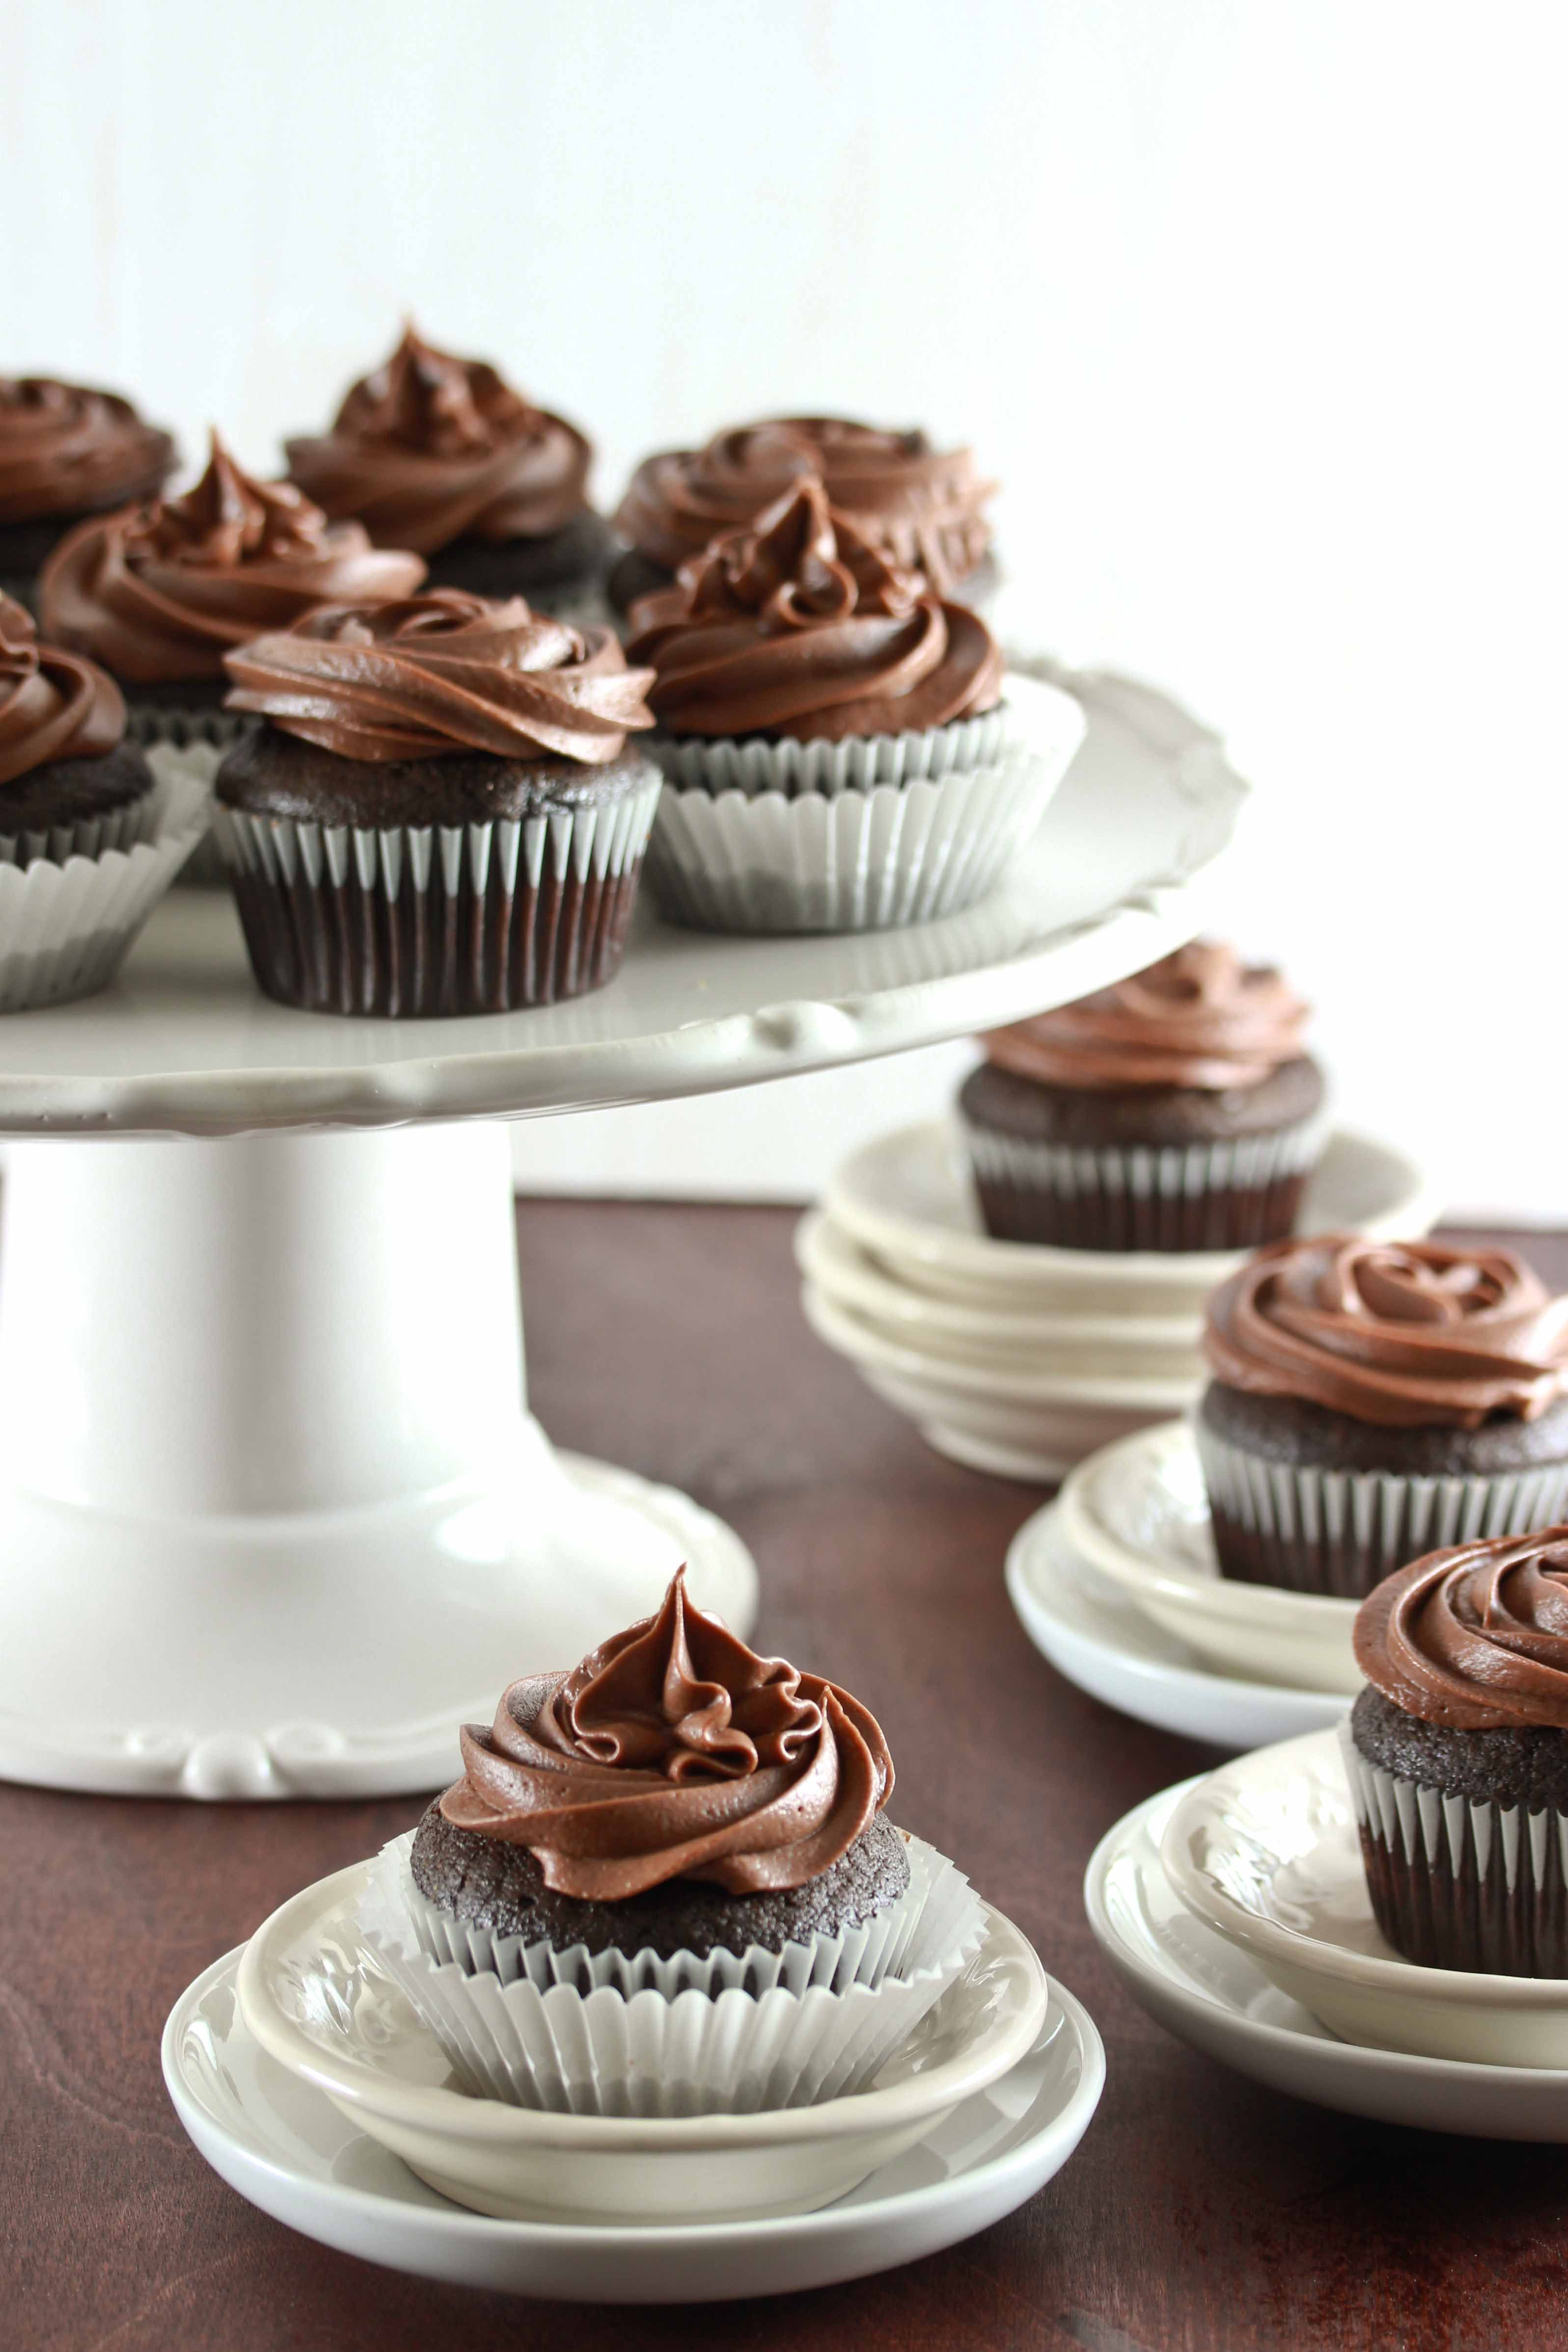 Secret Ingredient Chocolate Cupcakes With Chocolate Sour Cream Frosting Chocolate Cupcakes Sour Cream Frosting Dessert Cupcakes